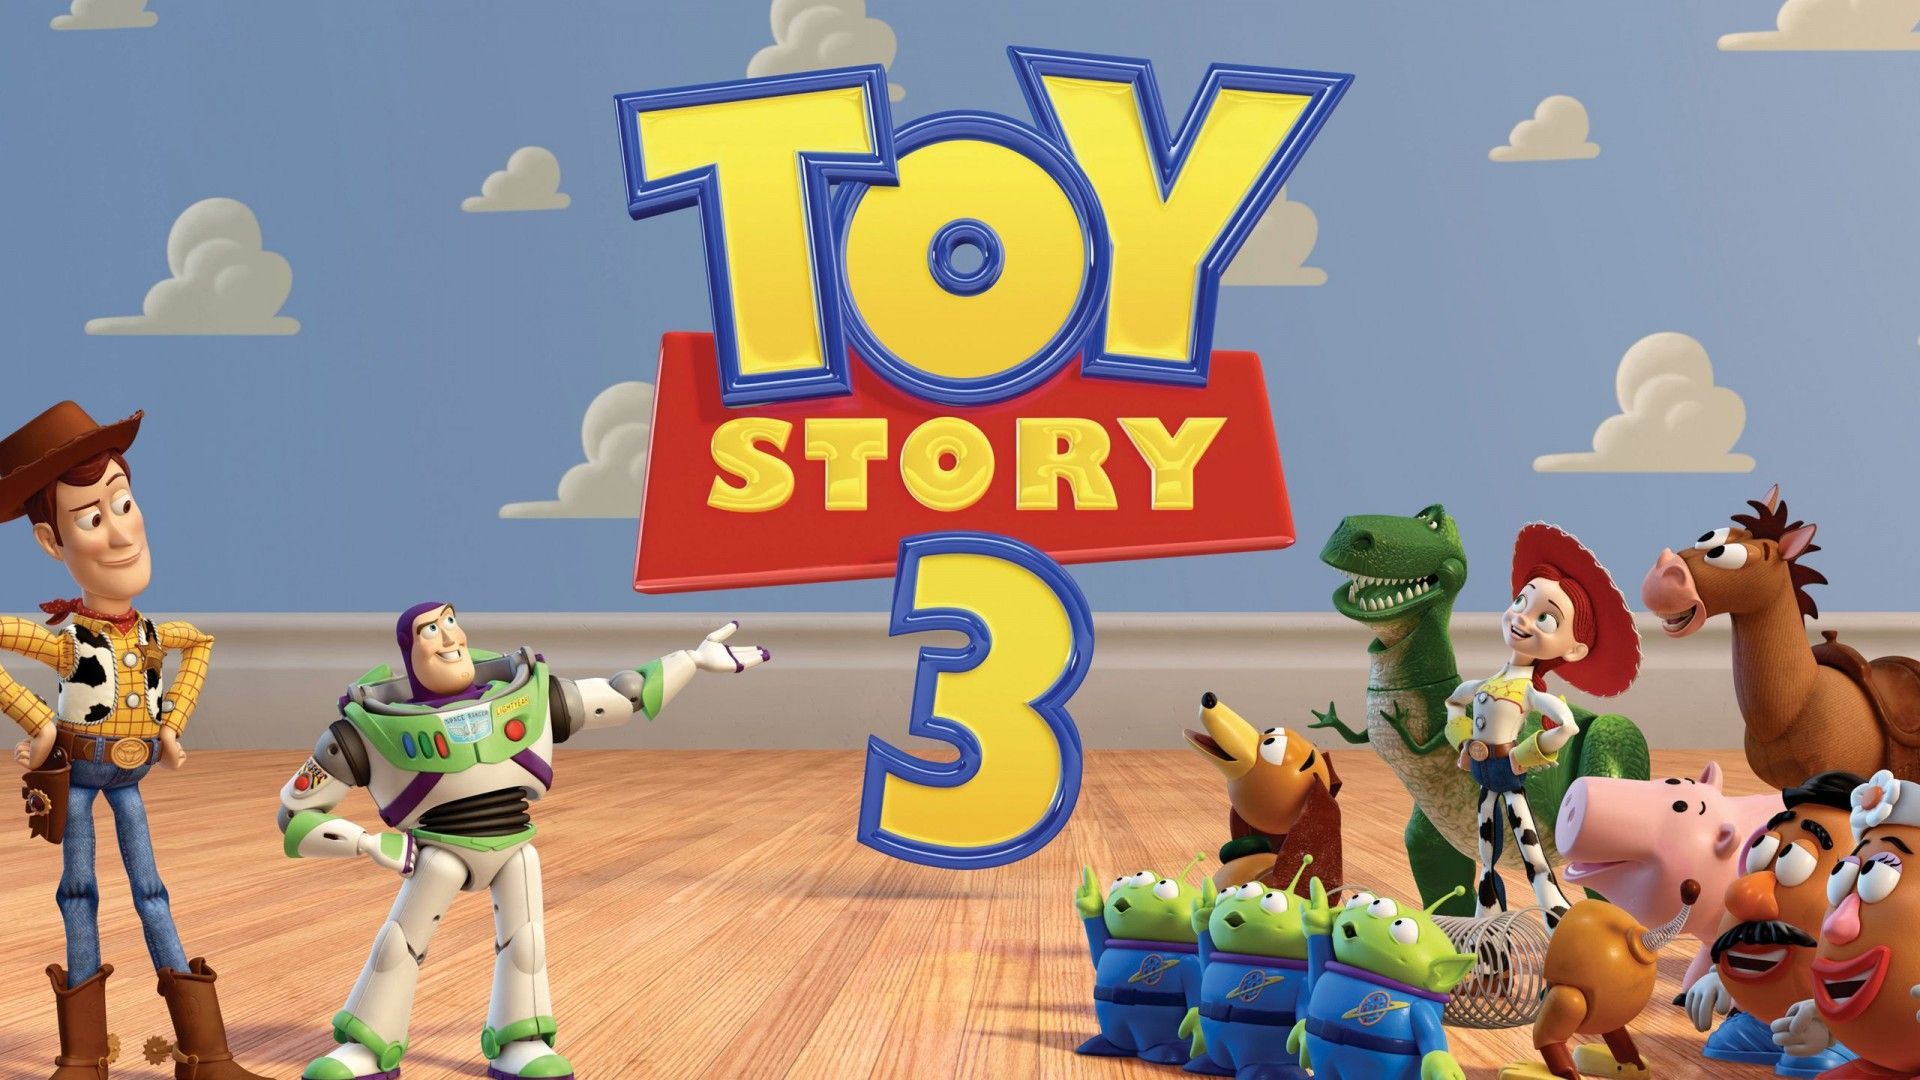 Toy Story 3 Wallpapers Hd 1920x1080 Logo Slinky Jpeg Image 1920 1080 Pixels Scaled 56 Toy Story 3 Toy Story Birthday Toy Story